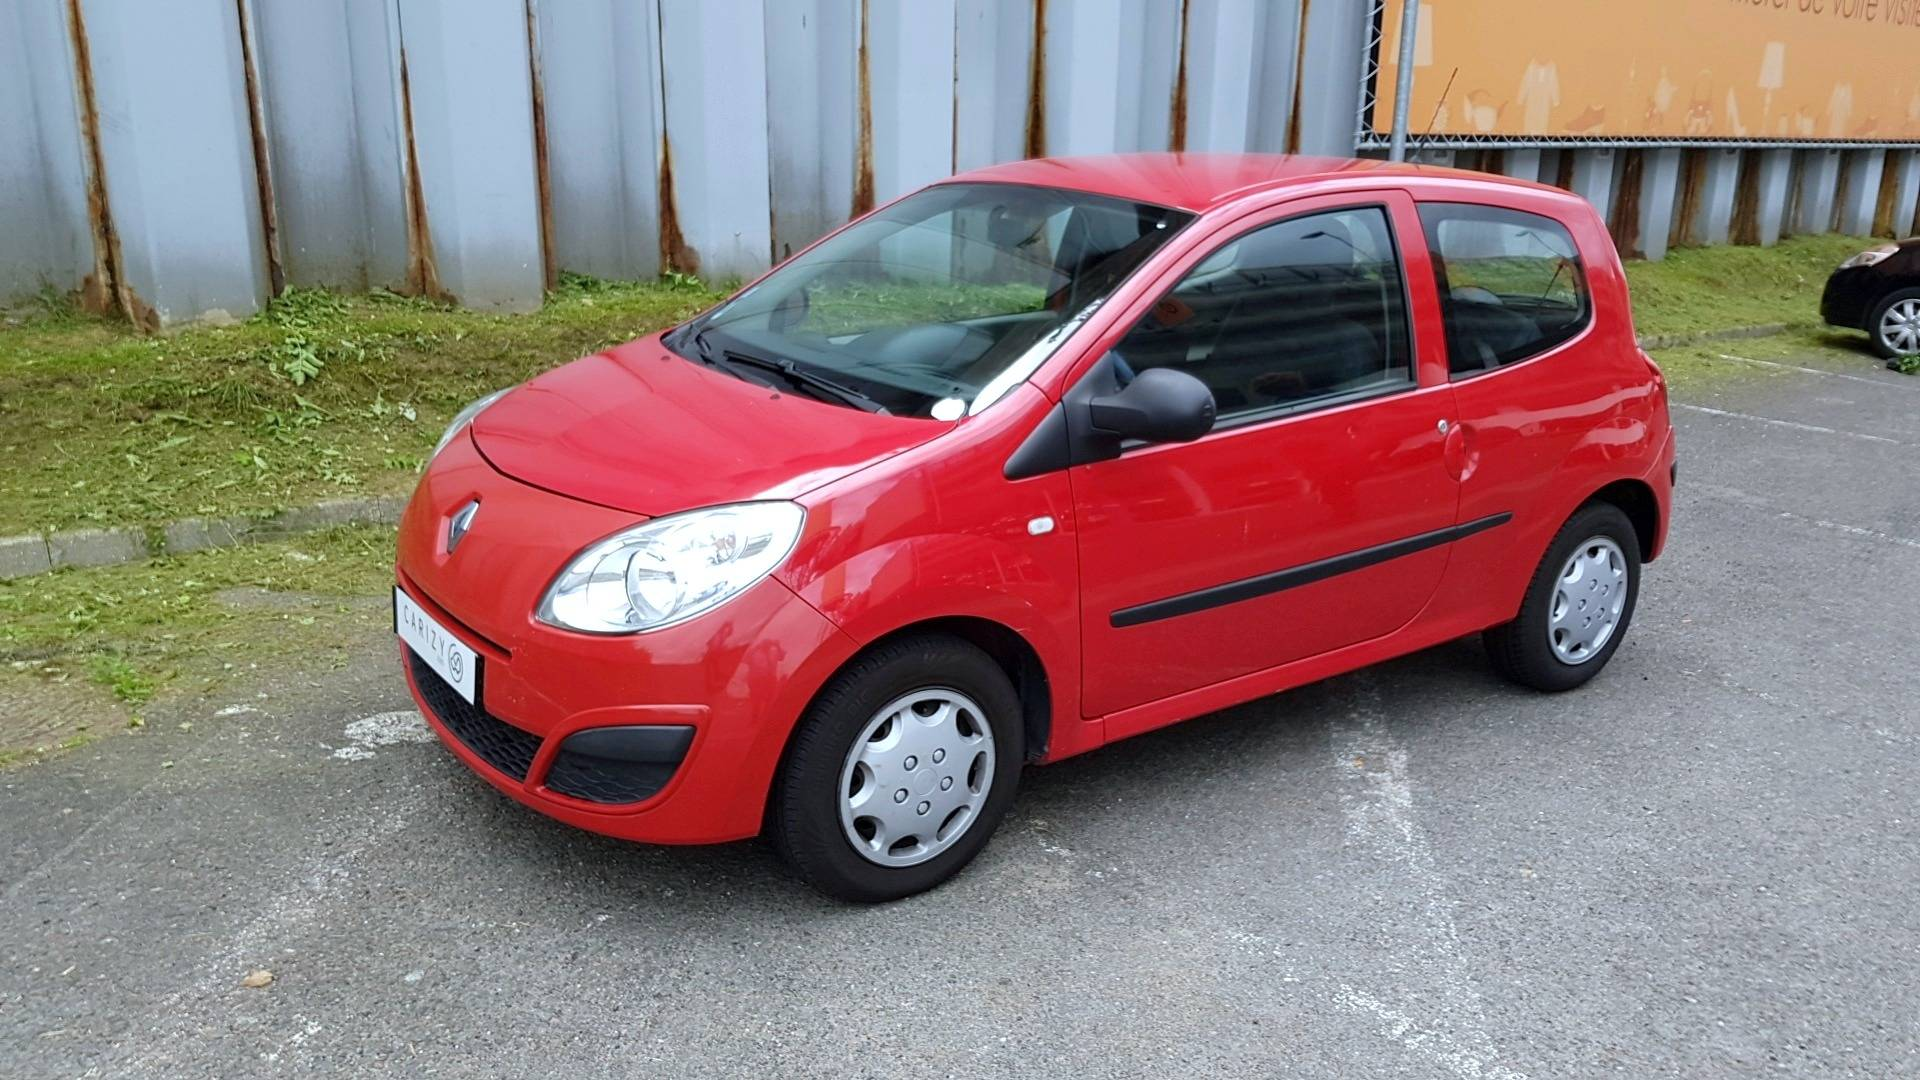 renault twingo d u0026 39 occasion 1 2 75 authentique ermont